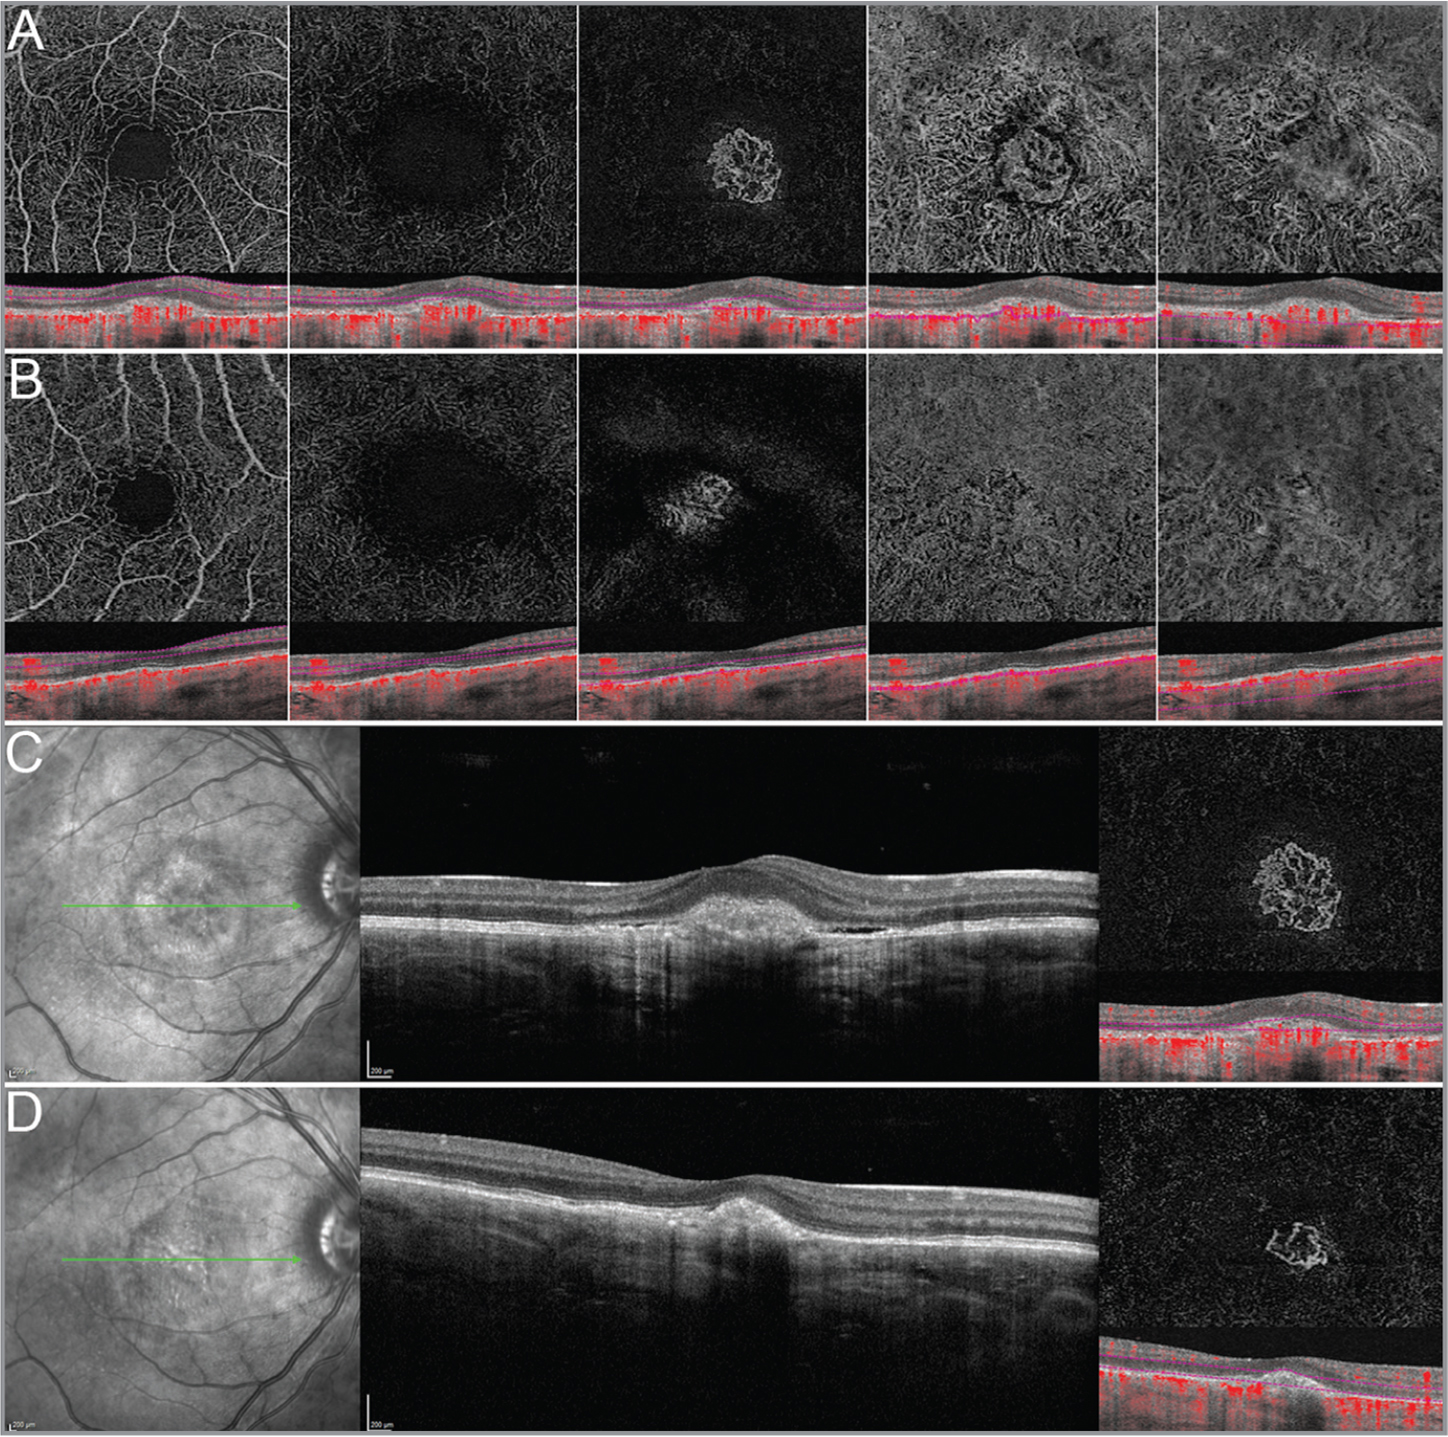 Optical coherence tomography angiography (OCTA) of bilateral choroidal osteoma. OCTA reconstructions show the following finds for the right eye (OD) (A): preserved superficial capillary plexus, foveal avascular zone enlargement in the deep capillary plexus, well-defined choroidal neovascularization (CNV) in the avascular zone, partially preserved choriocapillaris, and a complex peri-lesional vascular organization with thin tortuous vessels surrounding the lesion with poorly defined choroidal vessels. B-scan structural OCT with over-imposed flow information is provided, as well. The same findings are also visible in the left eye (B). After a single 1.0 mg/0.025 mL aflibercept injection, total exudation regression and CNV reduction was seen OD (C: baseline; D: 3-month follow-up).